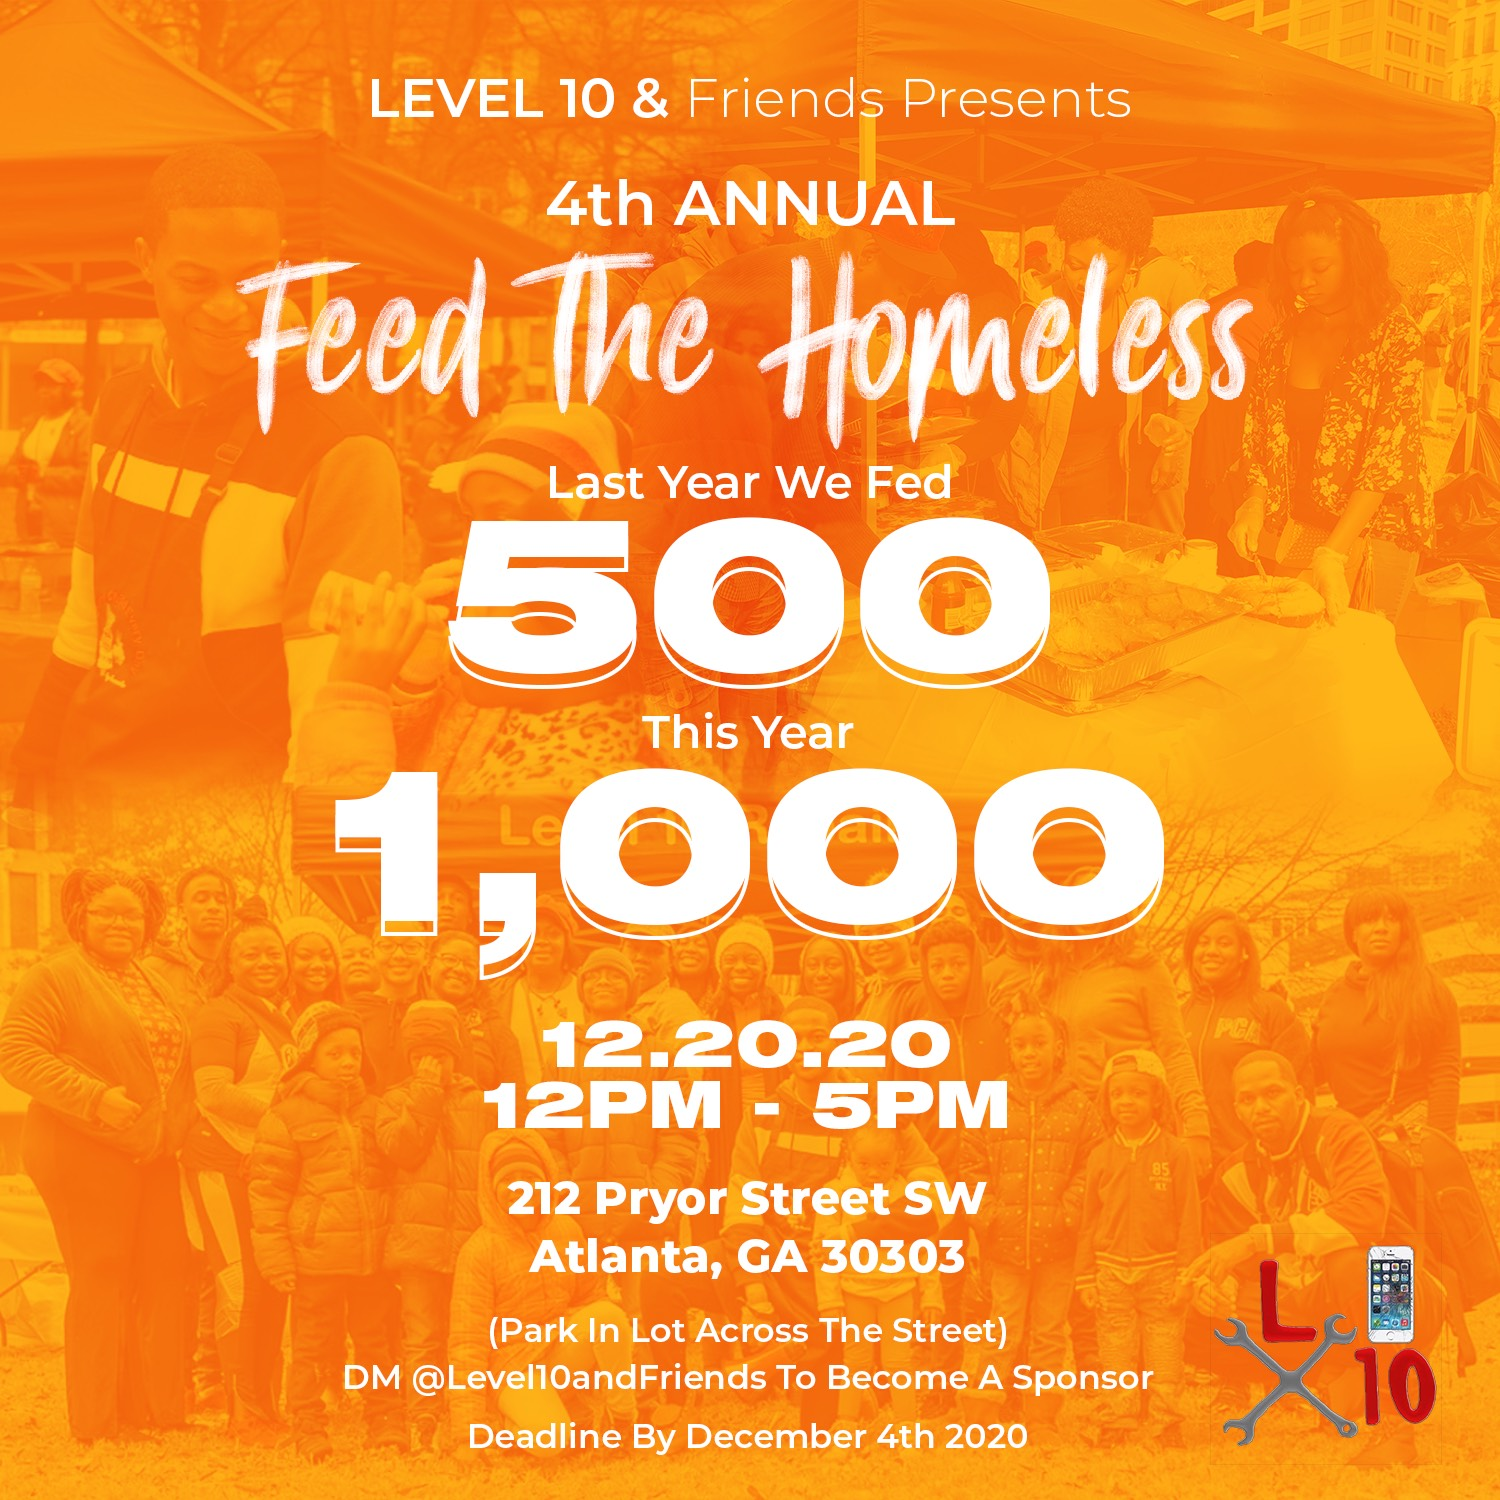 AJ Dewberry Hosts 4th Annual Feed the Homeless Event in Atlanta